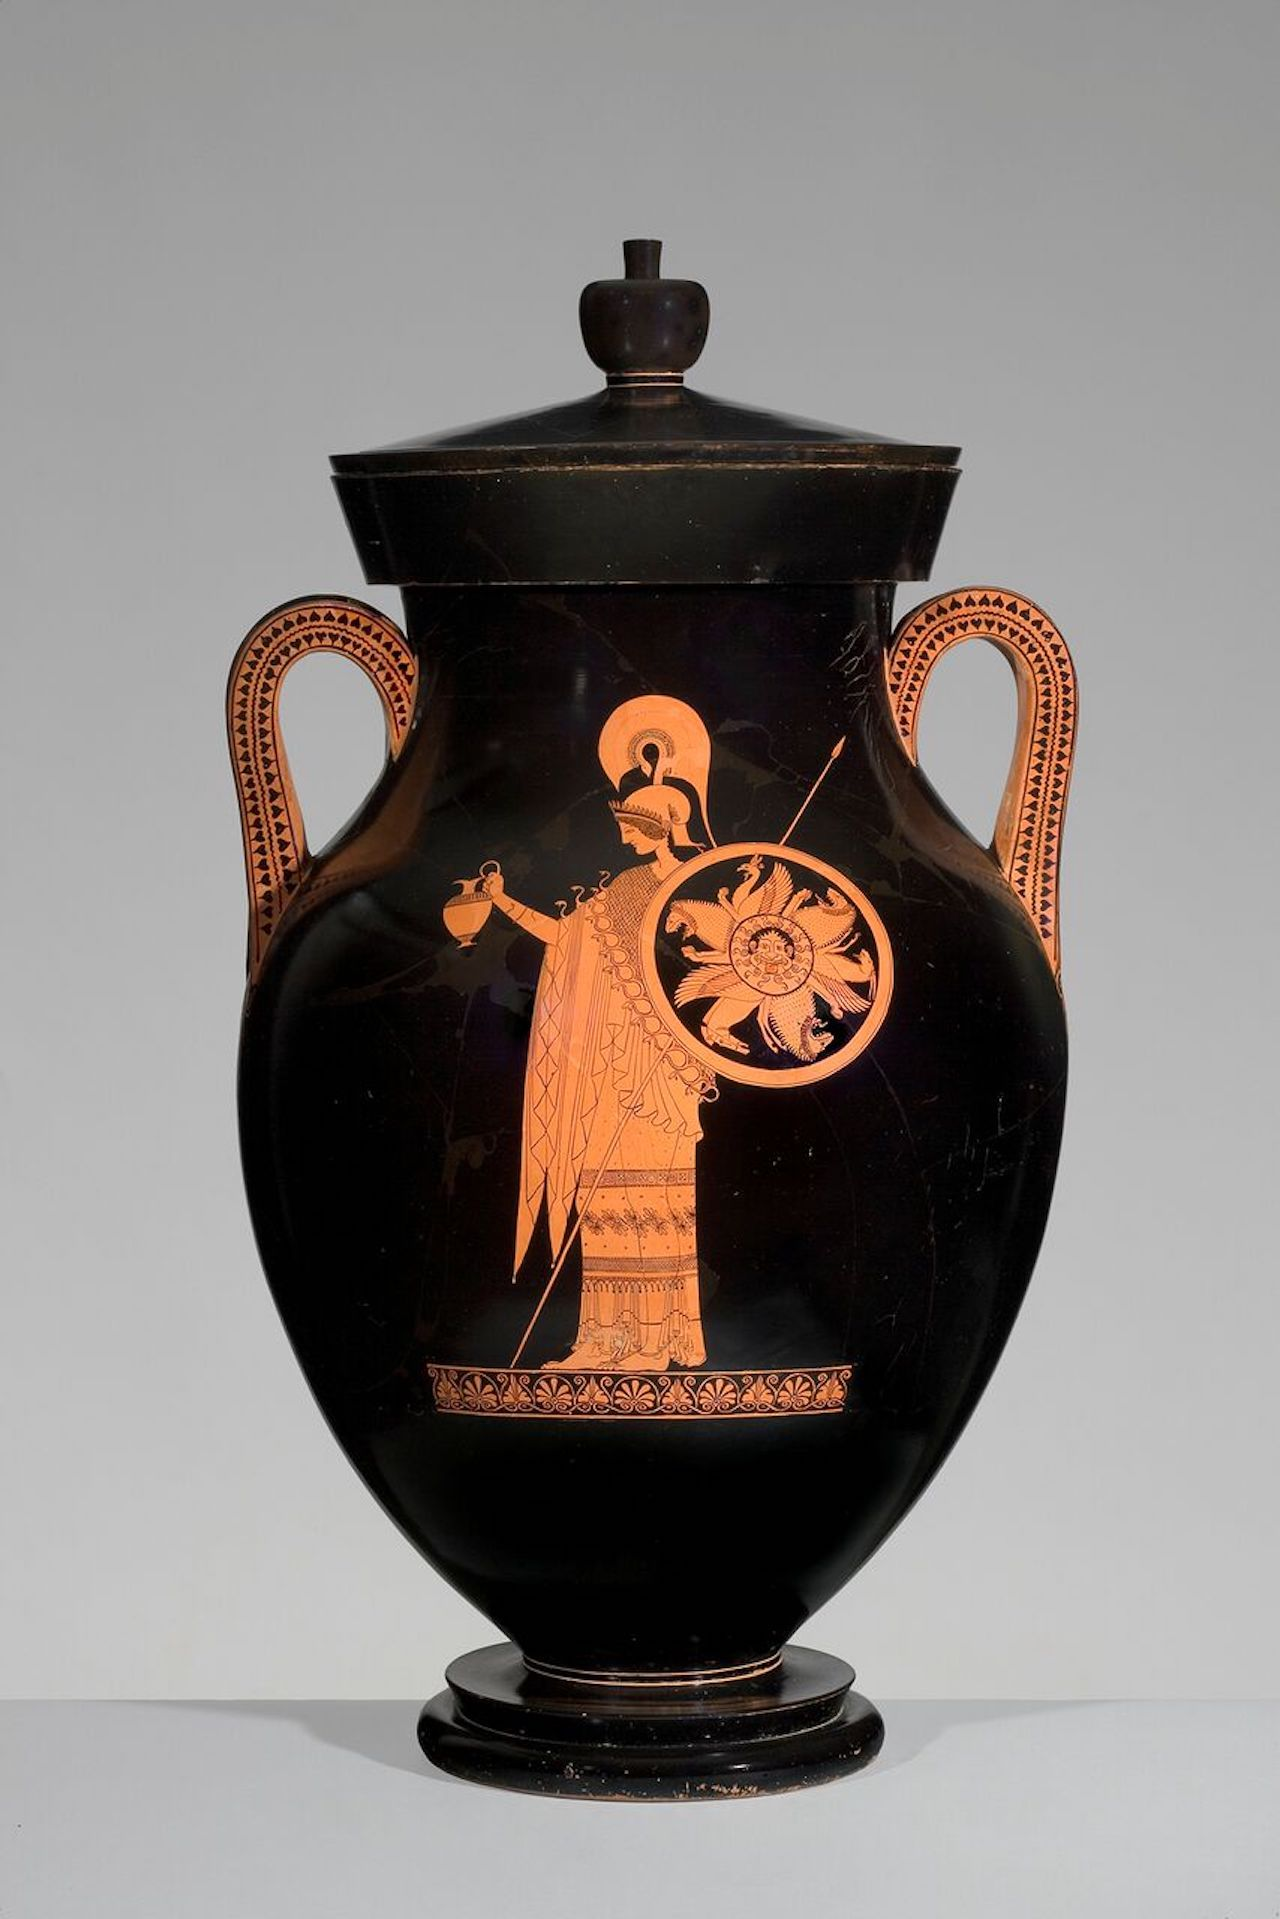 Laughing At The Jokes On Ancient Greek Vases